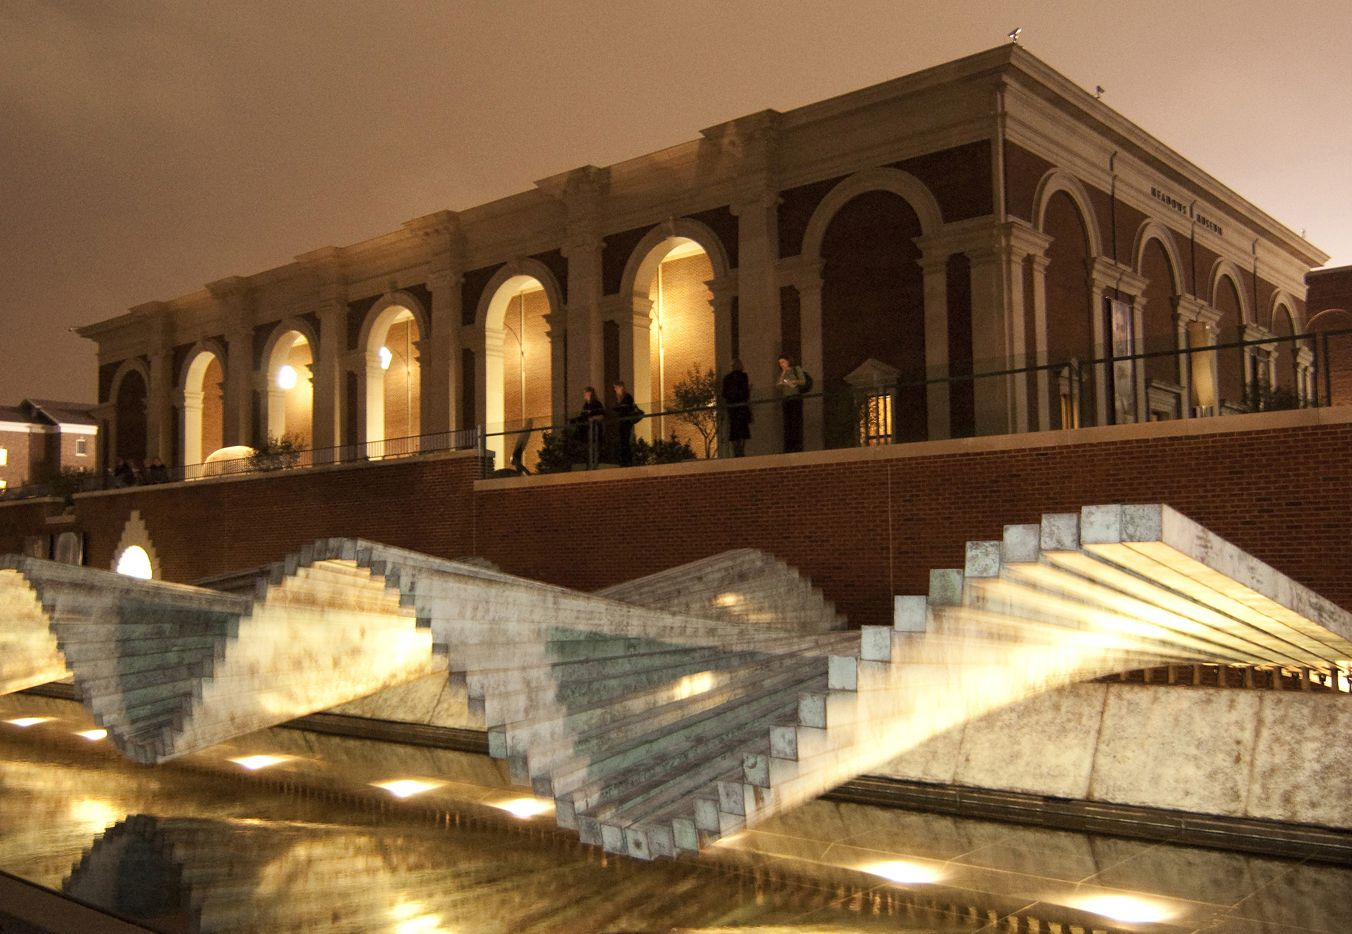 Meadows Museum entrance at night with the Irwin Overlook and Santiago Calatrava's Wave (2002) in foreground.